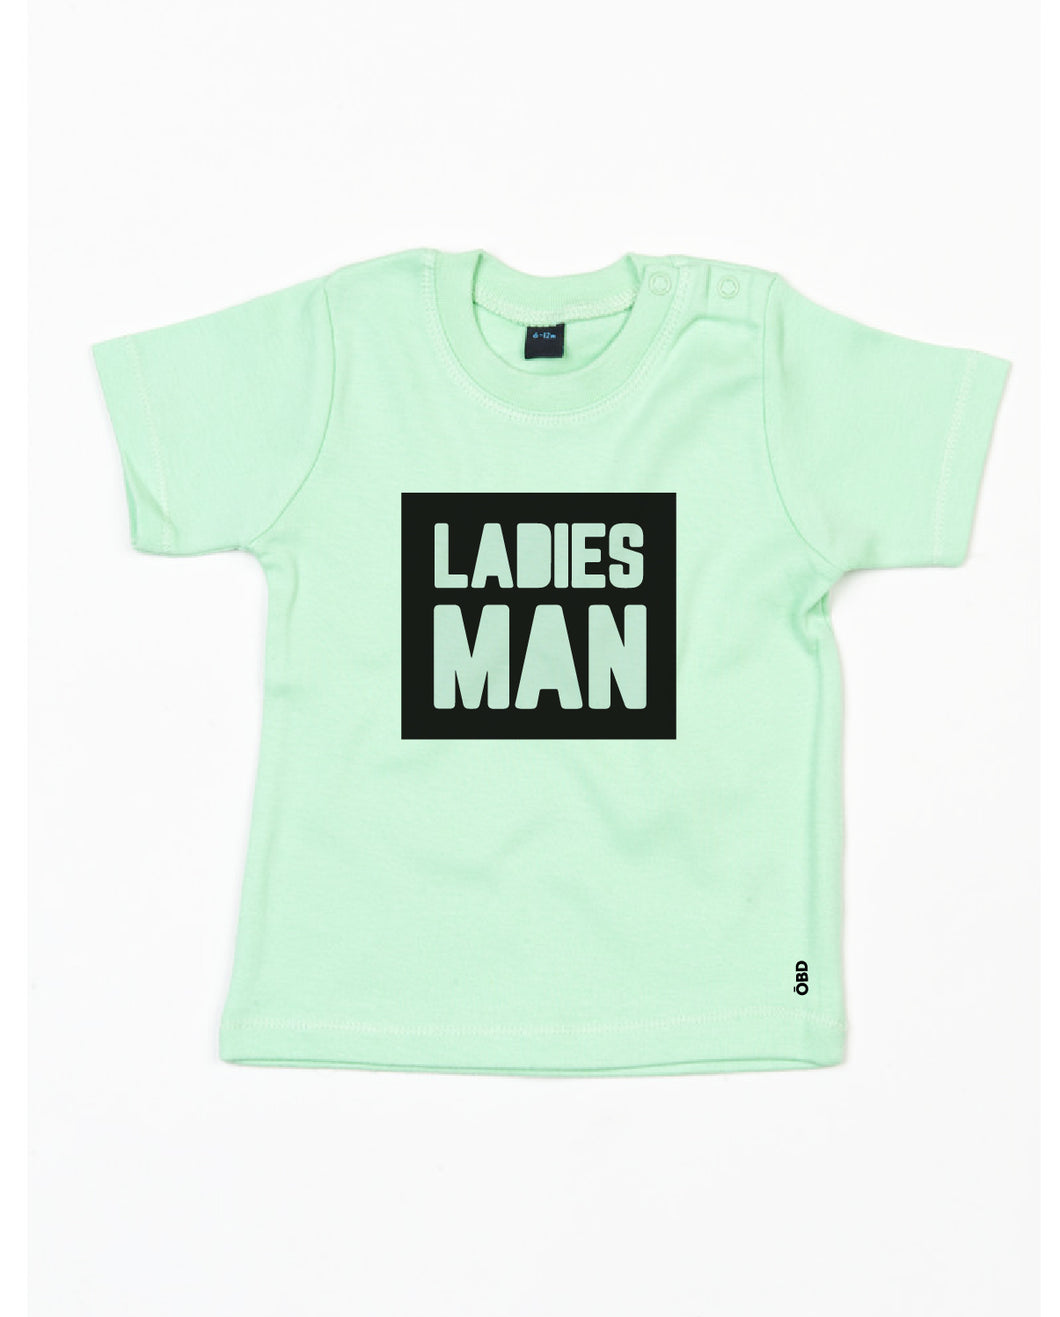 Ladies Man baby tee